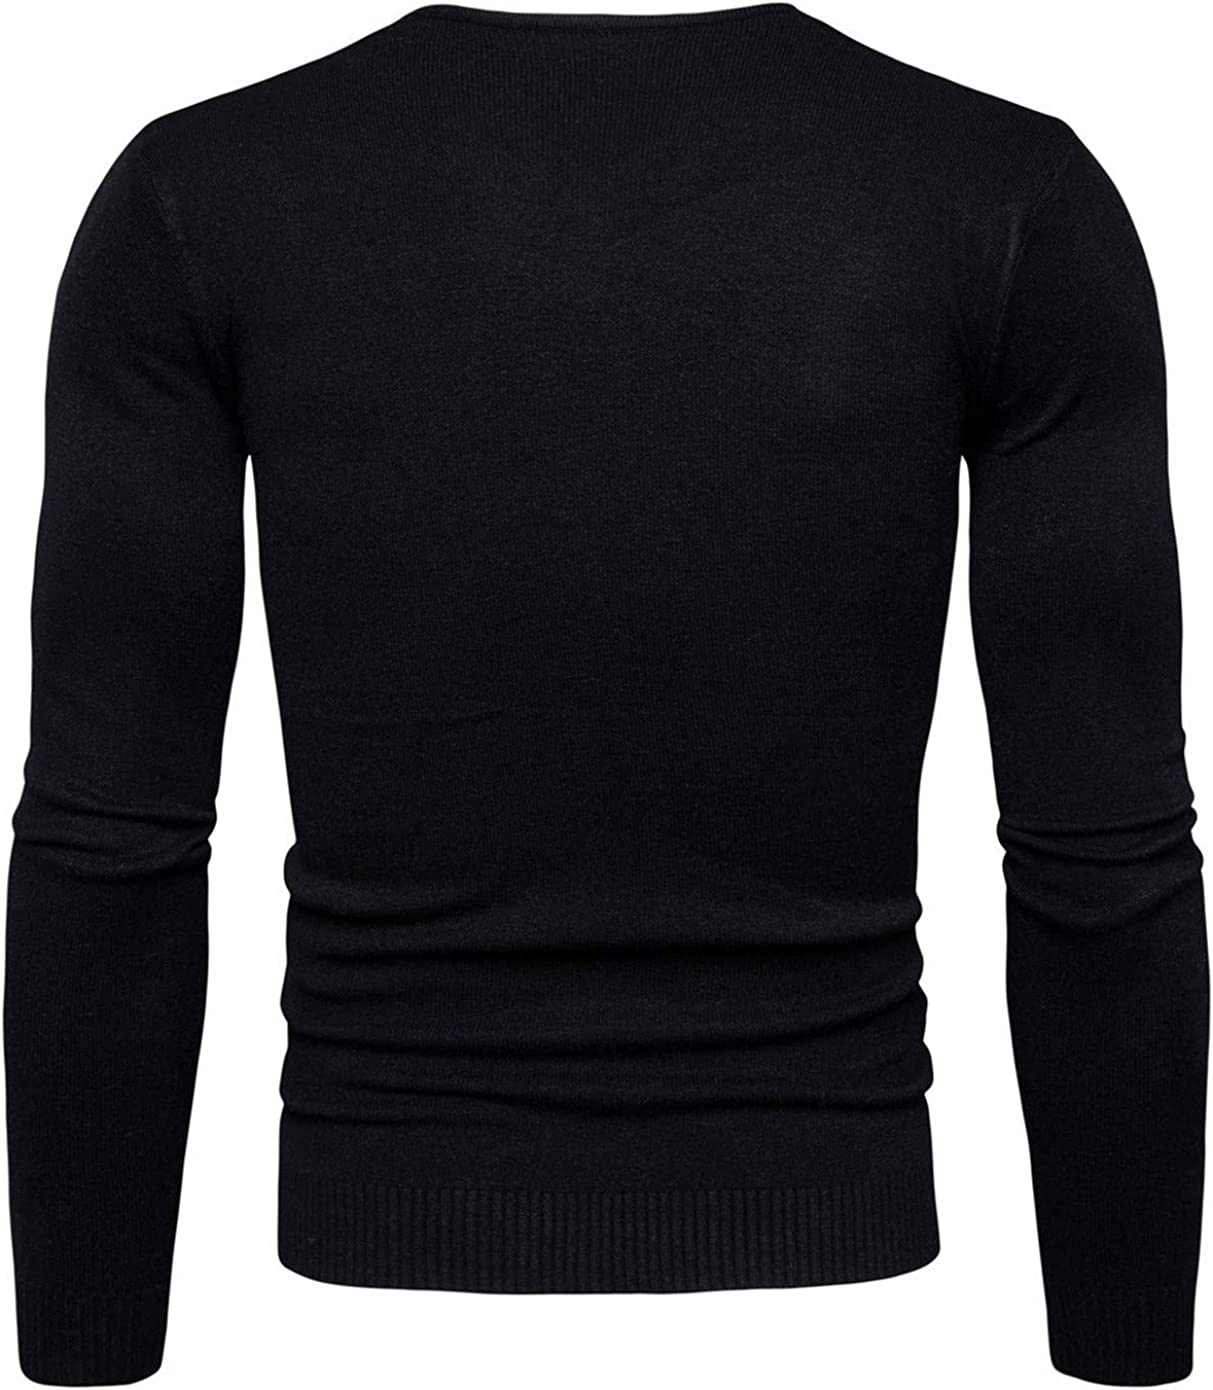 Soluo V-Neck Sweater for Men Lightweight Spring Pullover Sweater Merino Wool and Cotton Knit Underwear (Black,XX-Large)